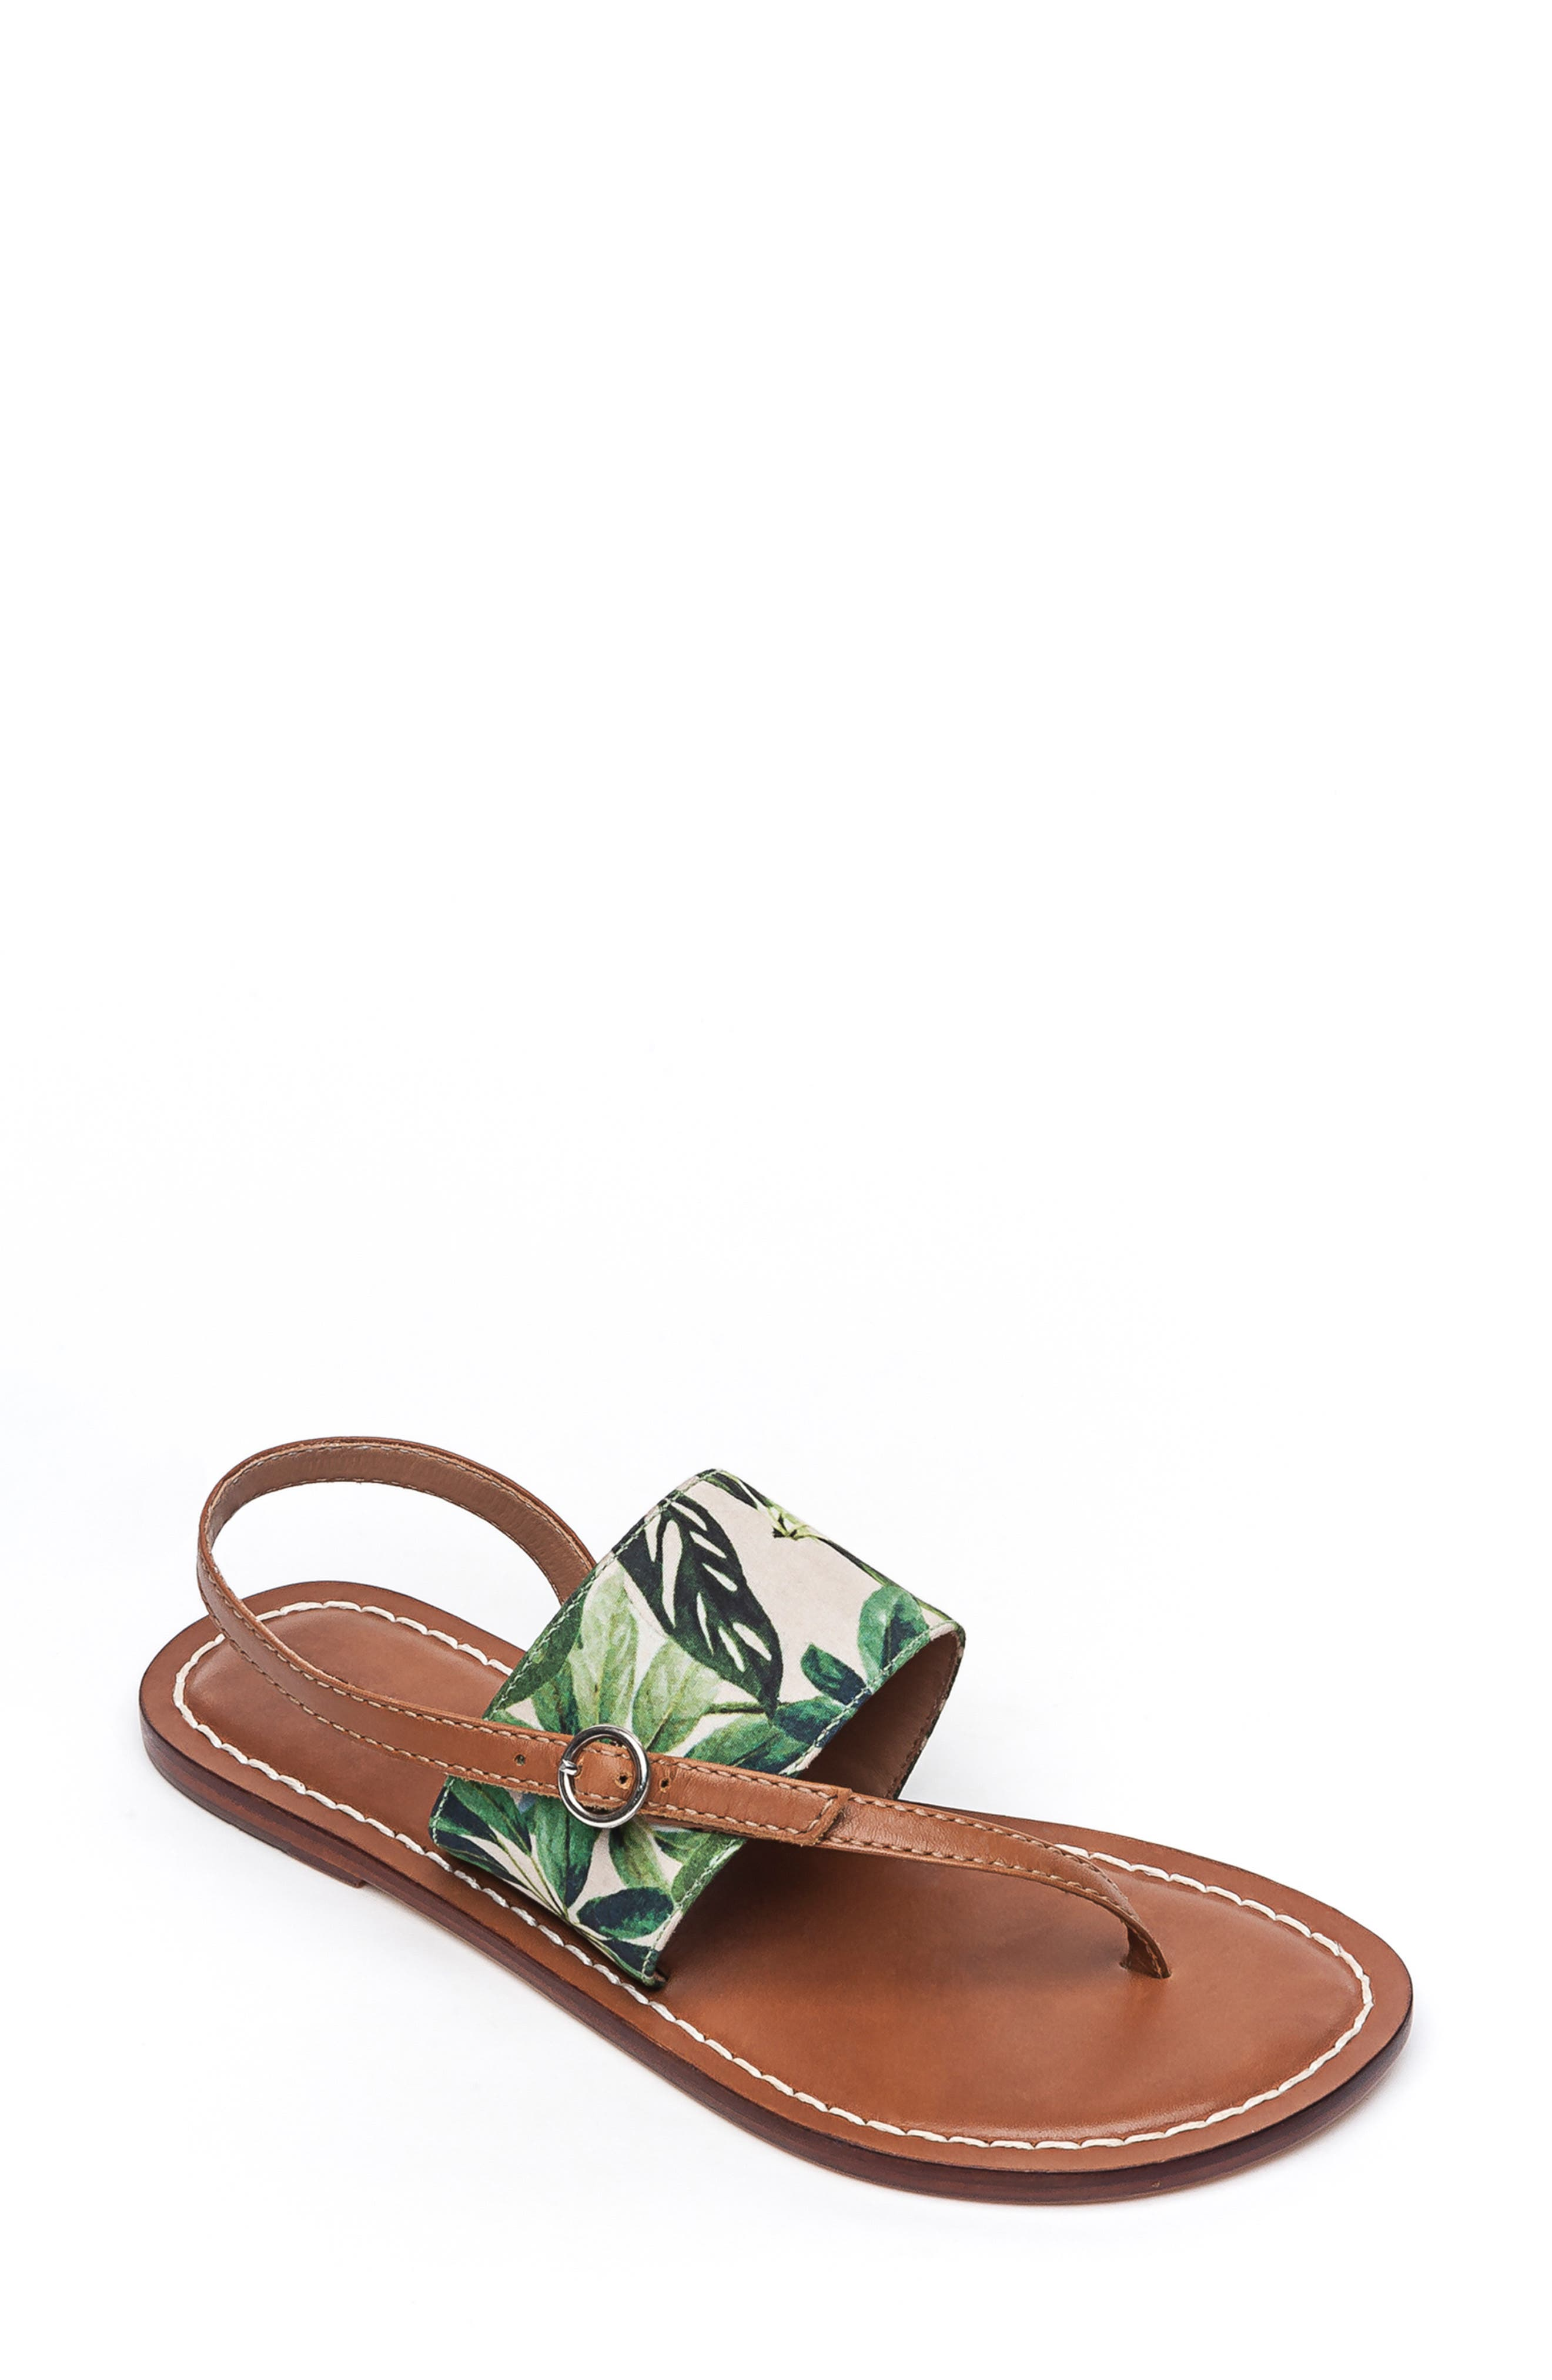 BERNARDO, Footwear Meg Thong Sandal, Main thumbnail 1, color, PALM FABRIC/ LUGGAGE LEATHER